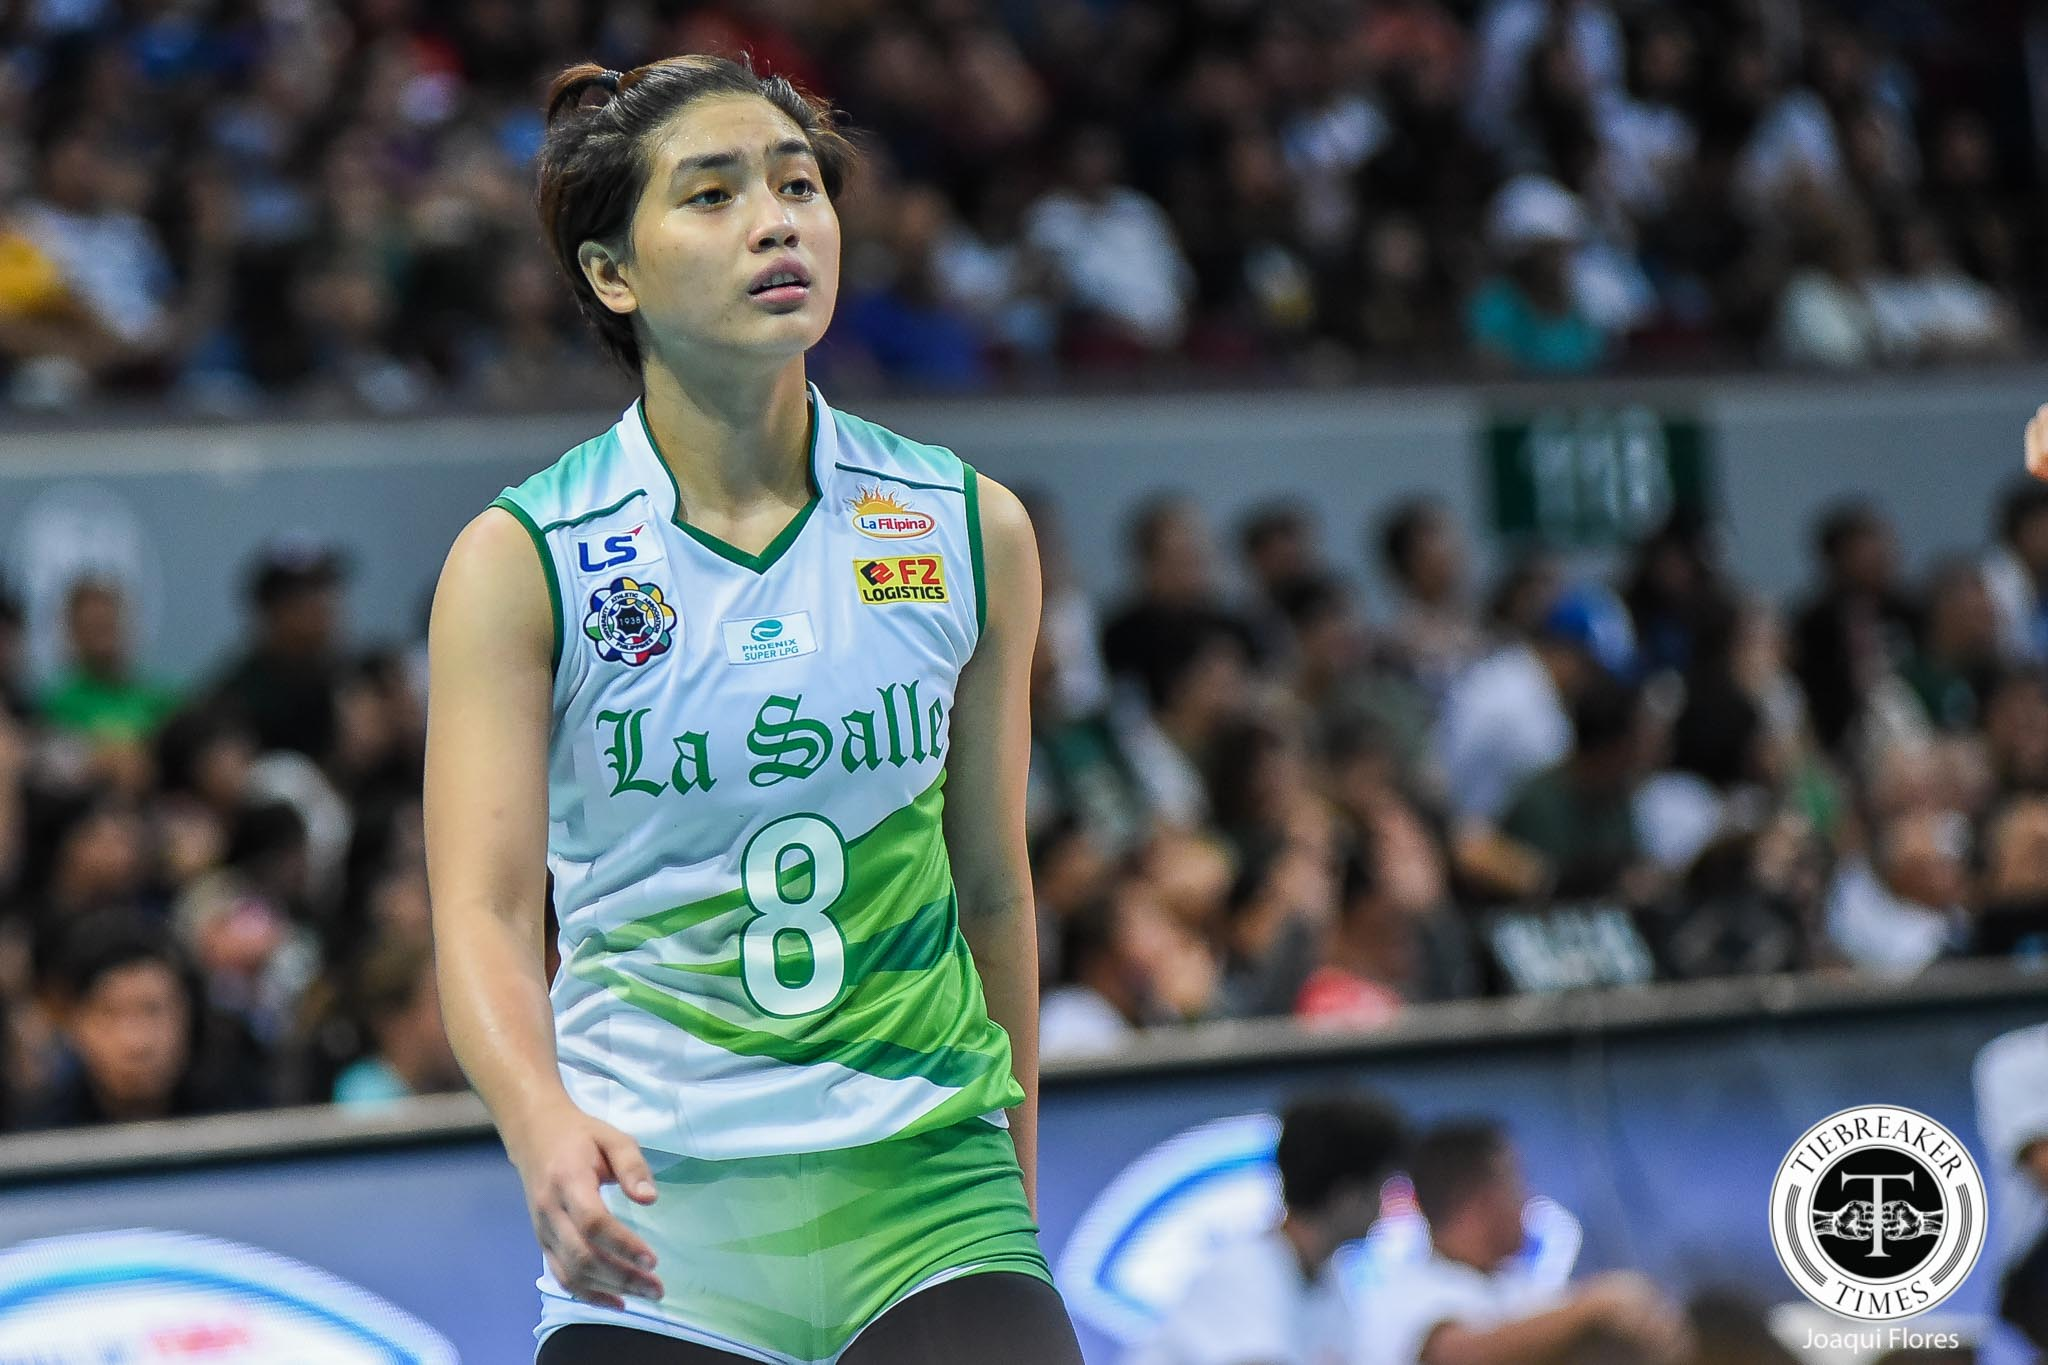 Tiebreaker Times DLSU rookie Jolina Dela Cruz comes out of nowhere to make immediate impact DLSU News UAAP Volleyball  UAAP Season 81 Women's Volleyball UAAP Season 81 Ramil De Jesus Jolina Dela Cruz DLSU Women's Volleyball